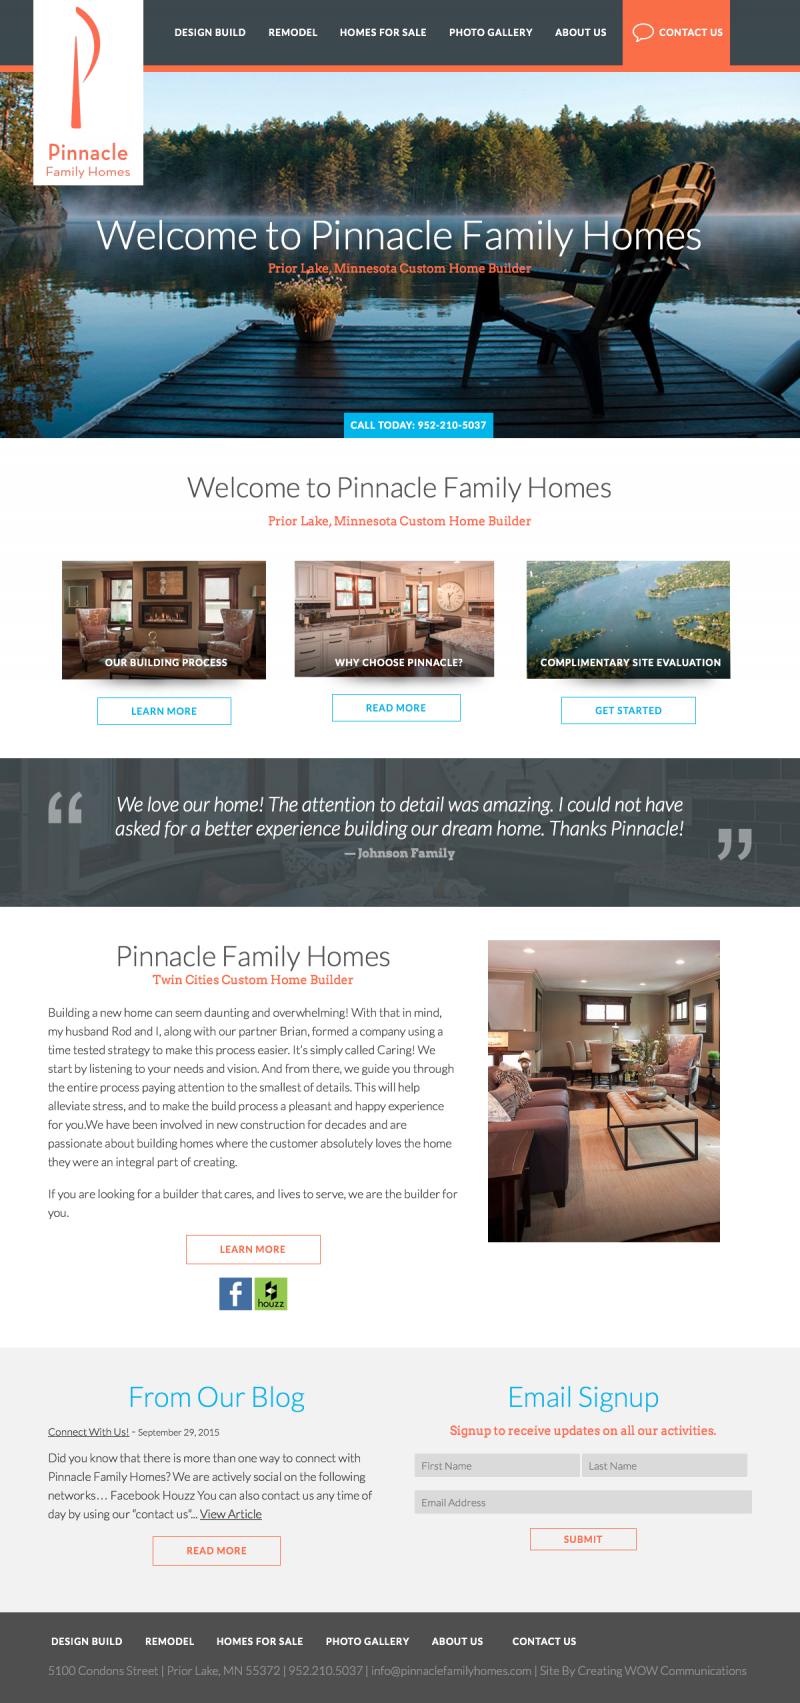 Pinnacle Family Homes